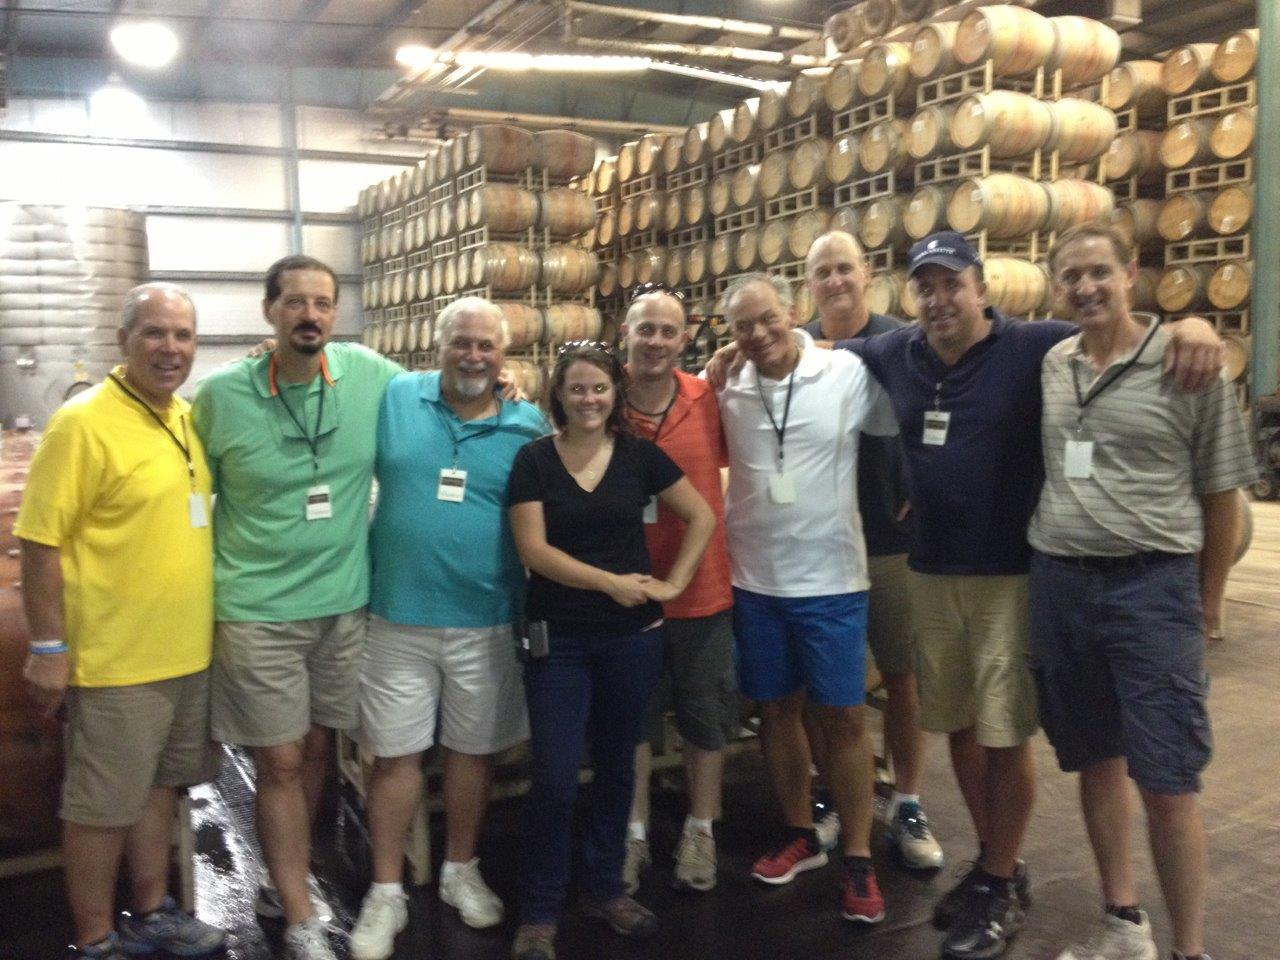 CDI Visits Hogue Cellar Vineyards in Washington